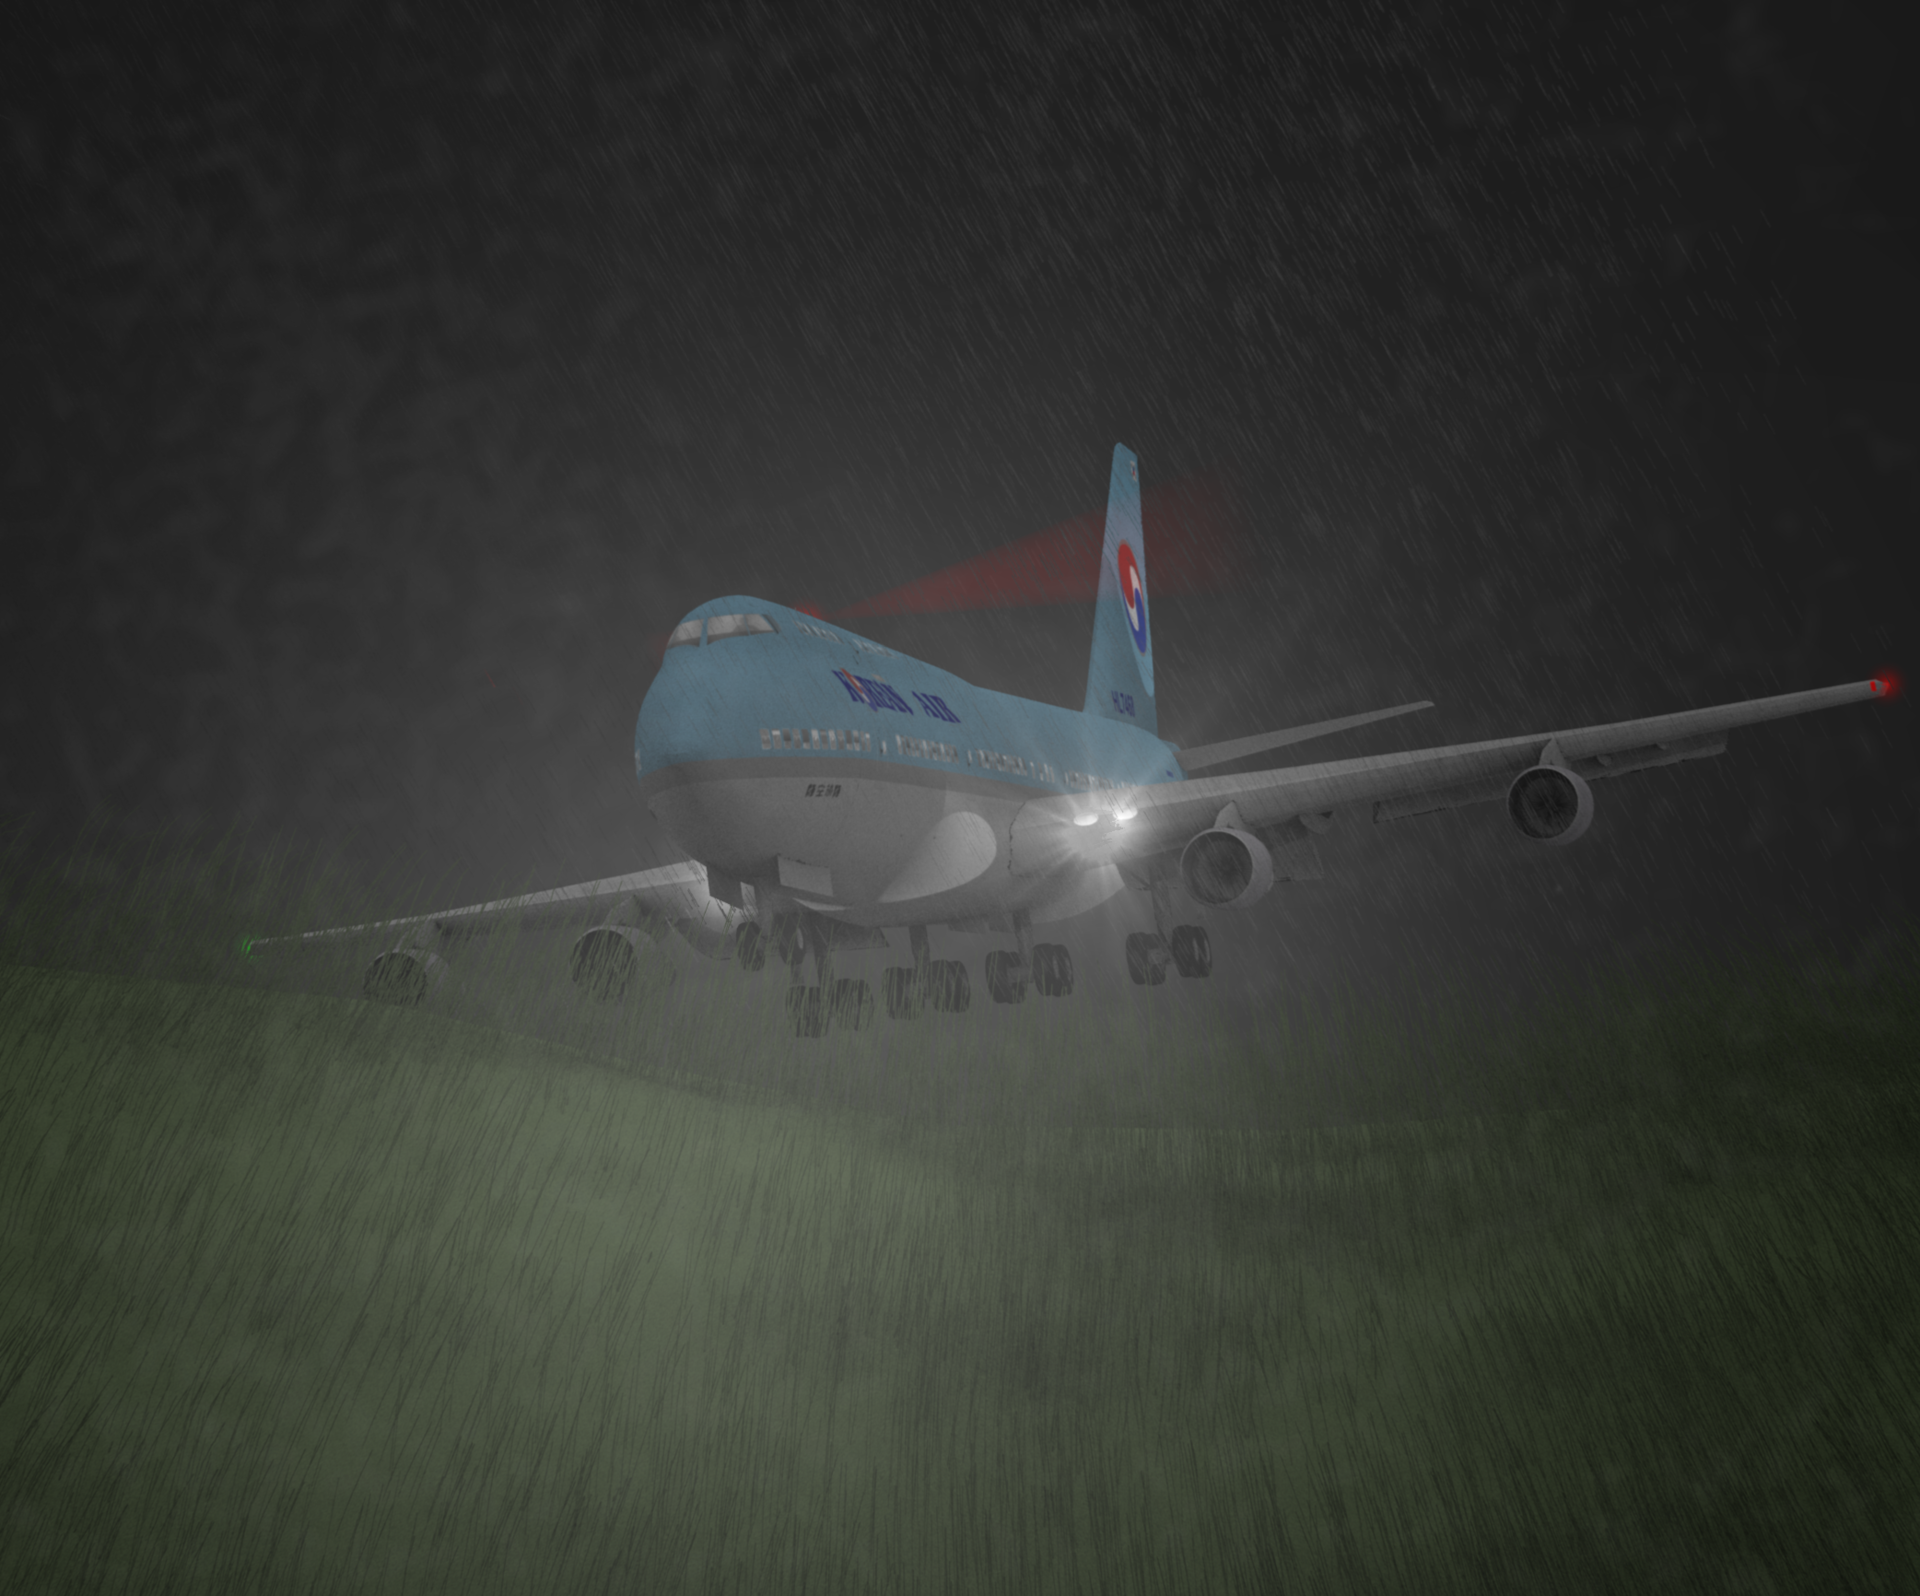 korean air 801 Korean air flight 801 was a regular flight from seoul to guam the boeing 747-300 departed the gate about 21:27 and was airborne about 21:53.